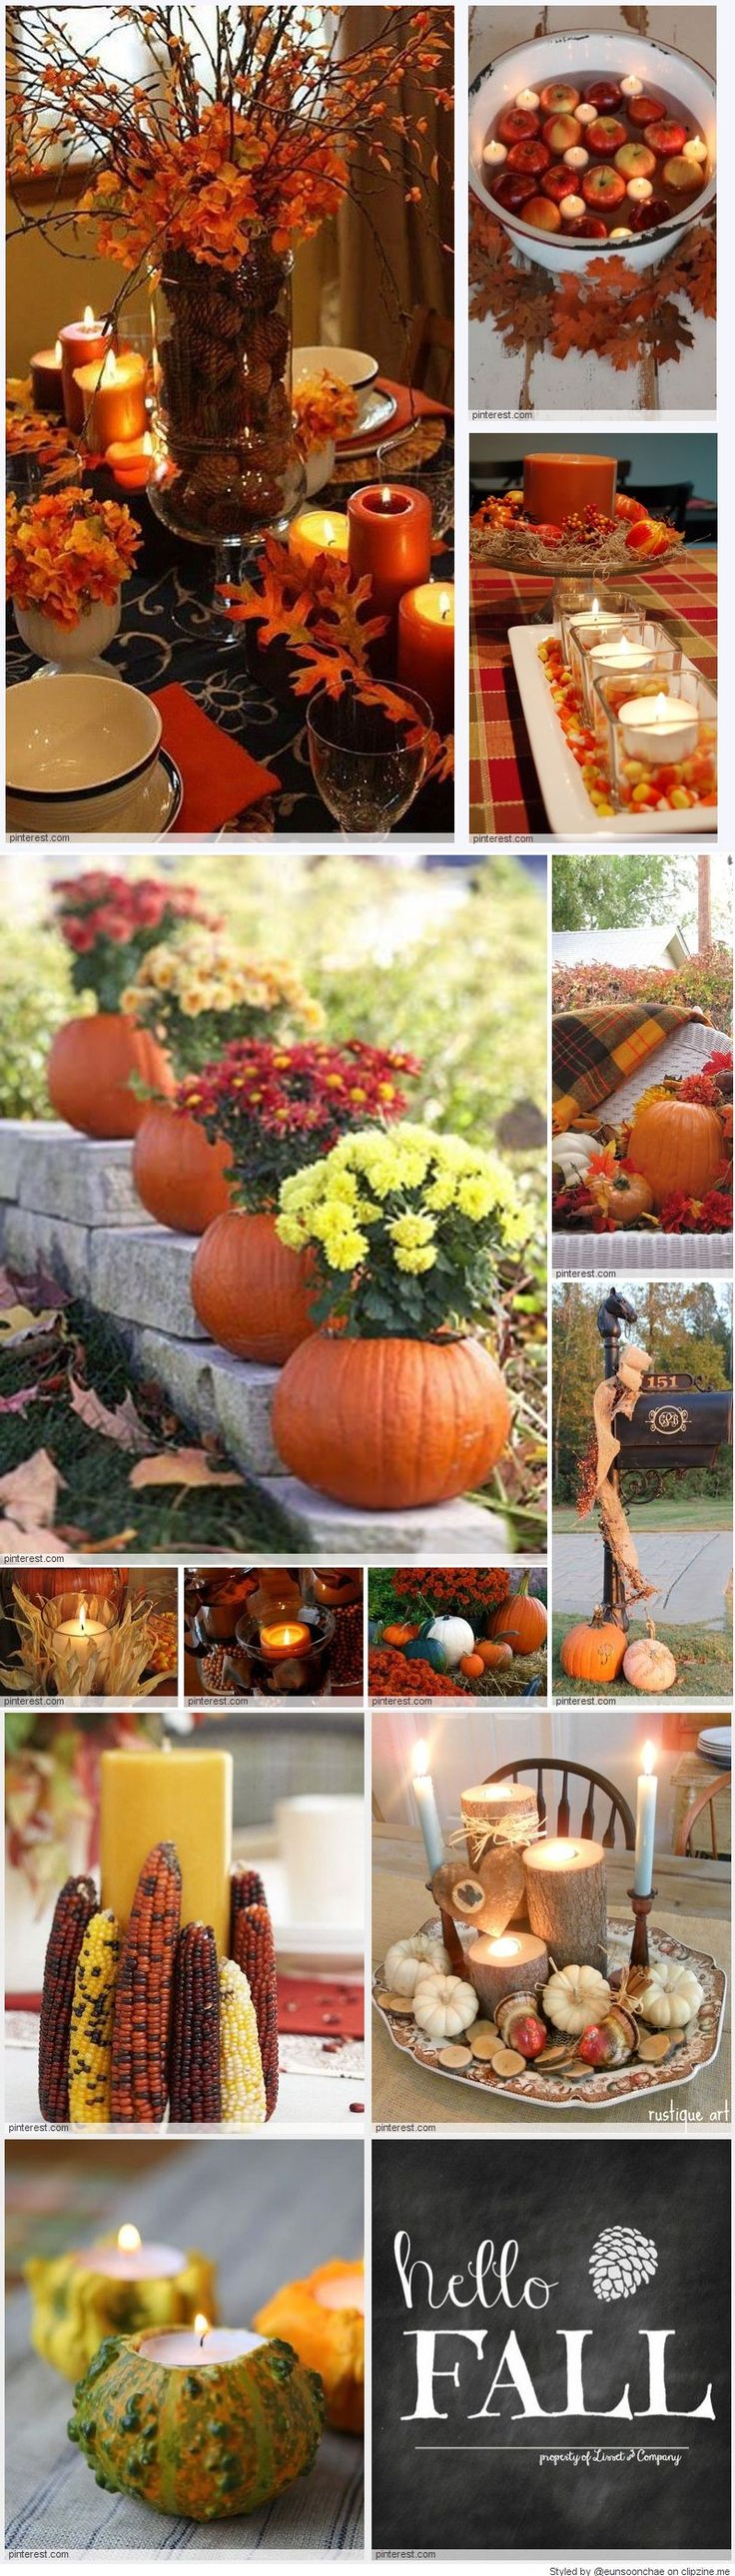 best 20 harvest decorations ideas on pinterest fall harvest decorations fall decor lanterns and fall porch decorations - Fall Harvest Decor